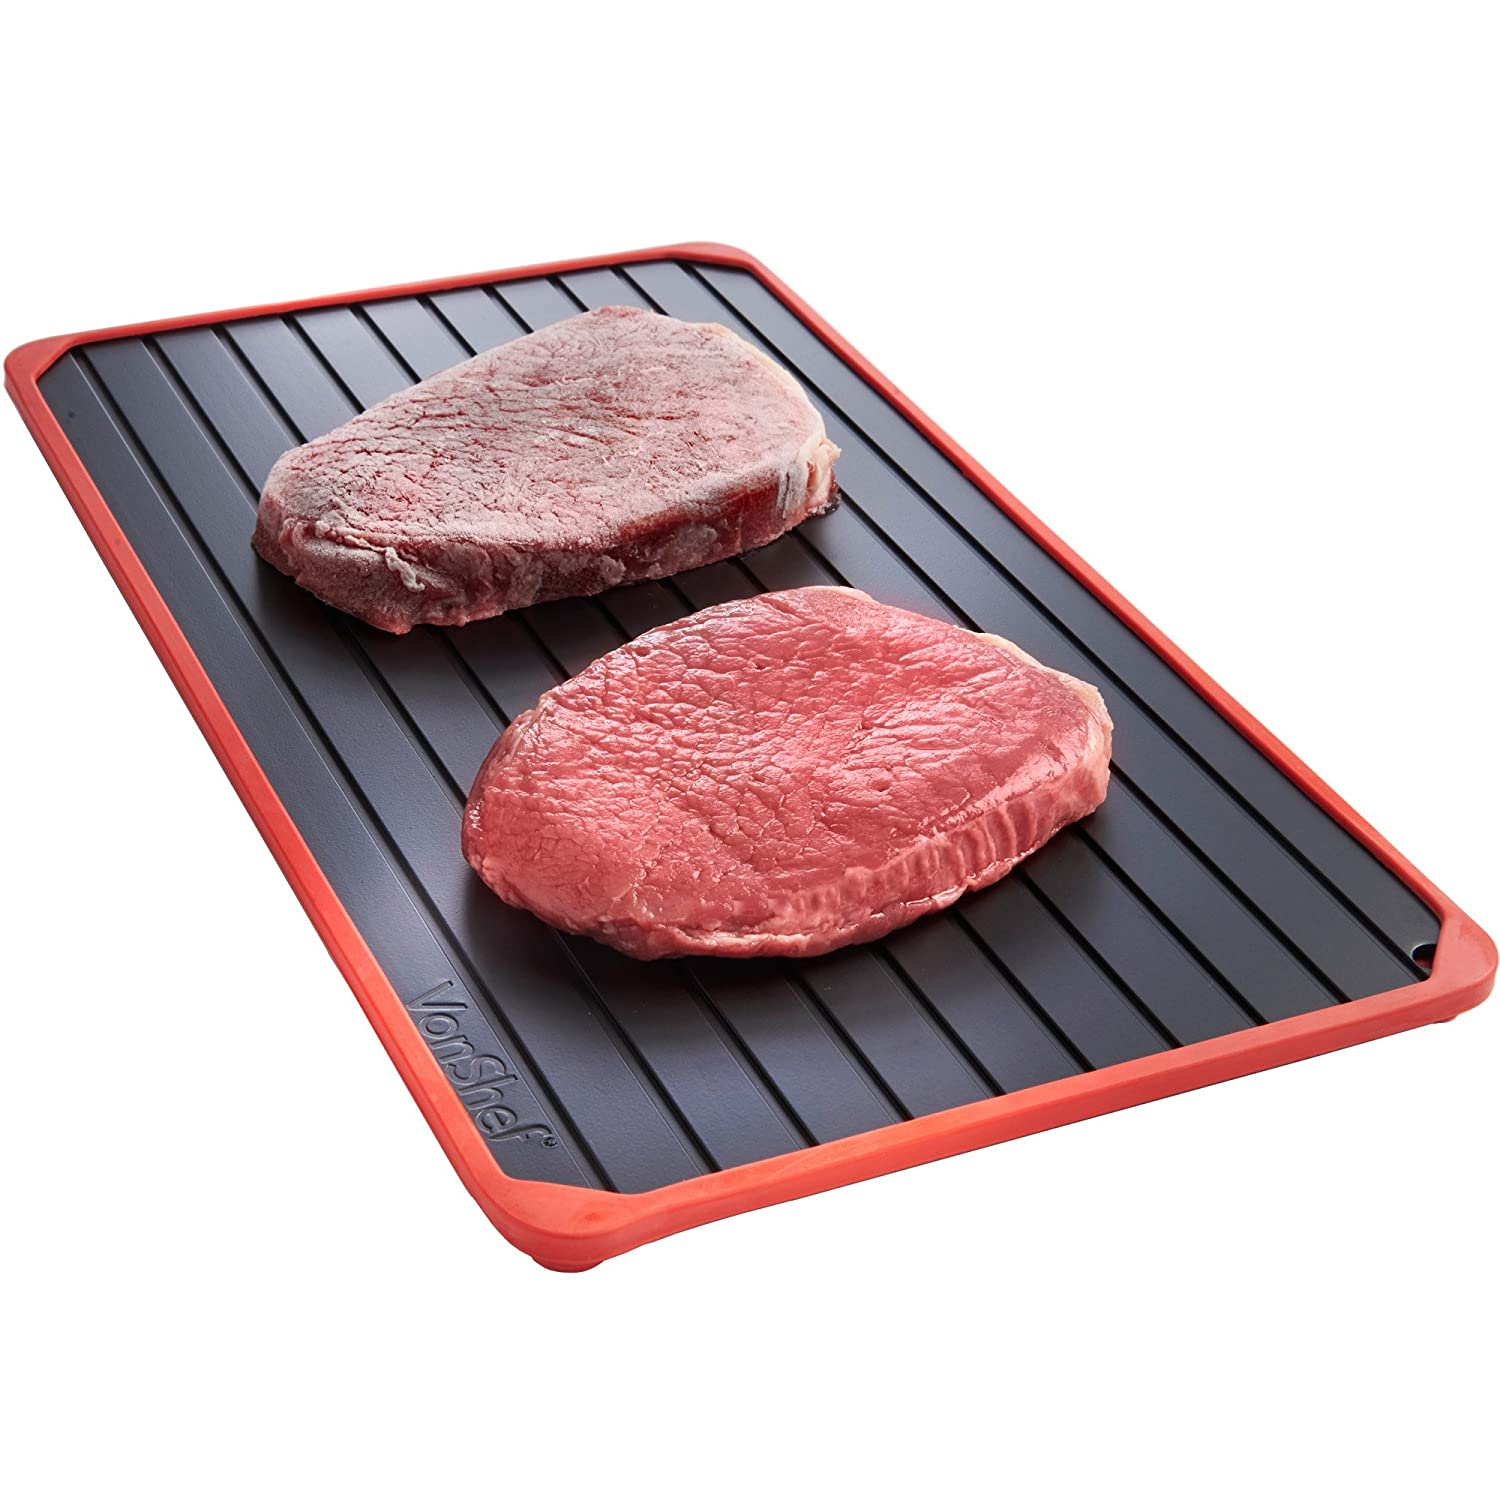 VonShef Defrosting Tray with Red Silicone Border Thaws Frozen Food Faster No Electricity, No Chemicals, No Microwave, Black